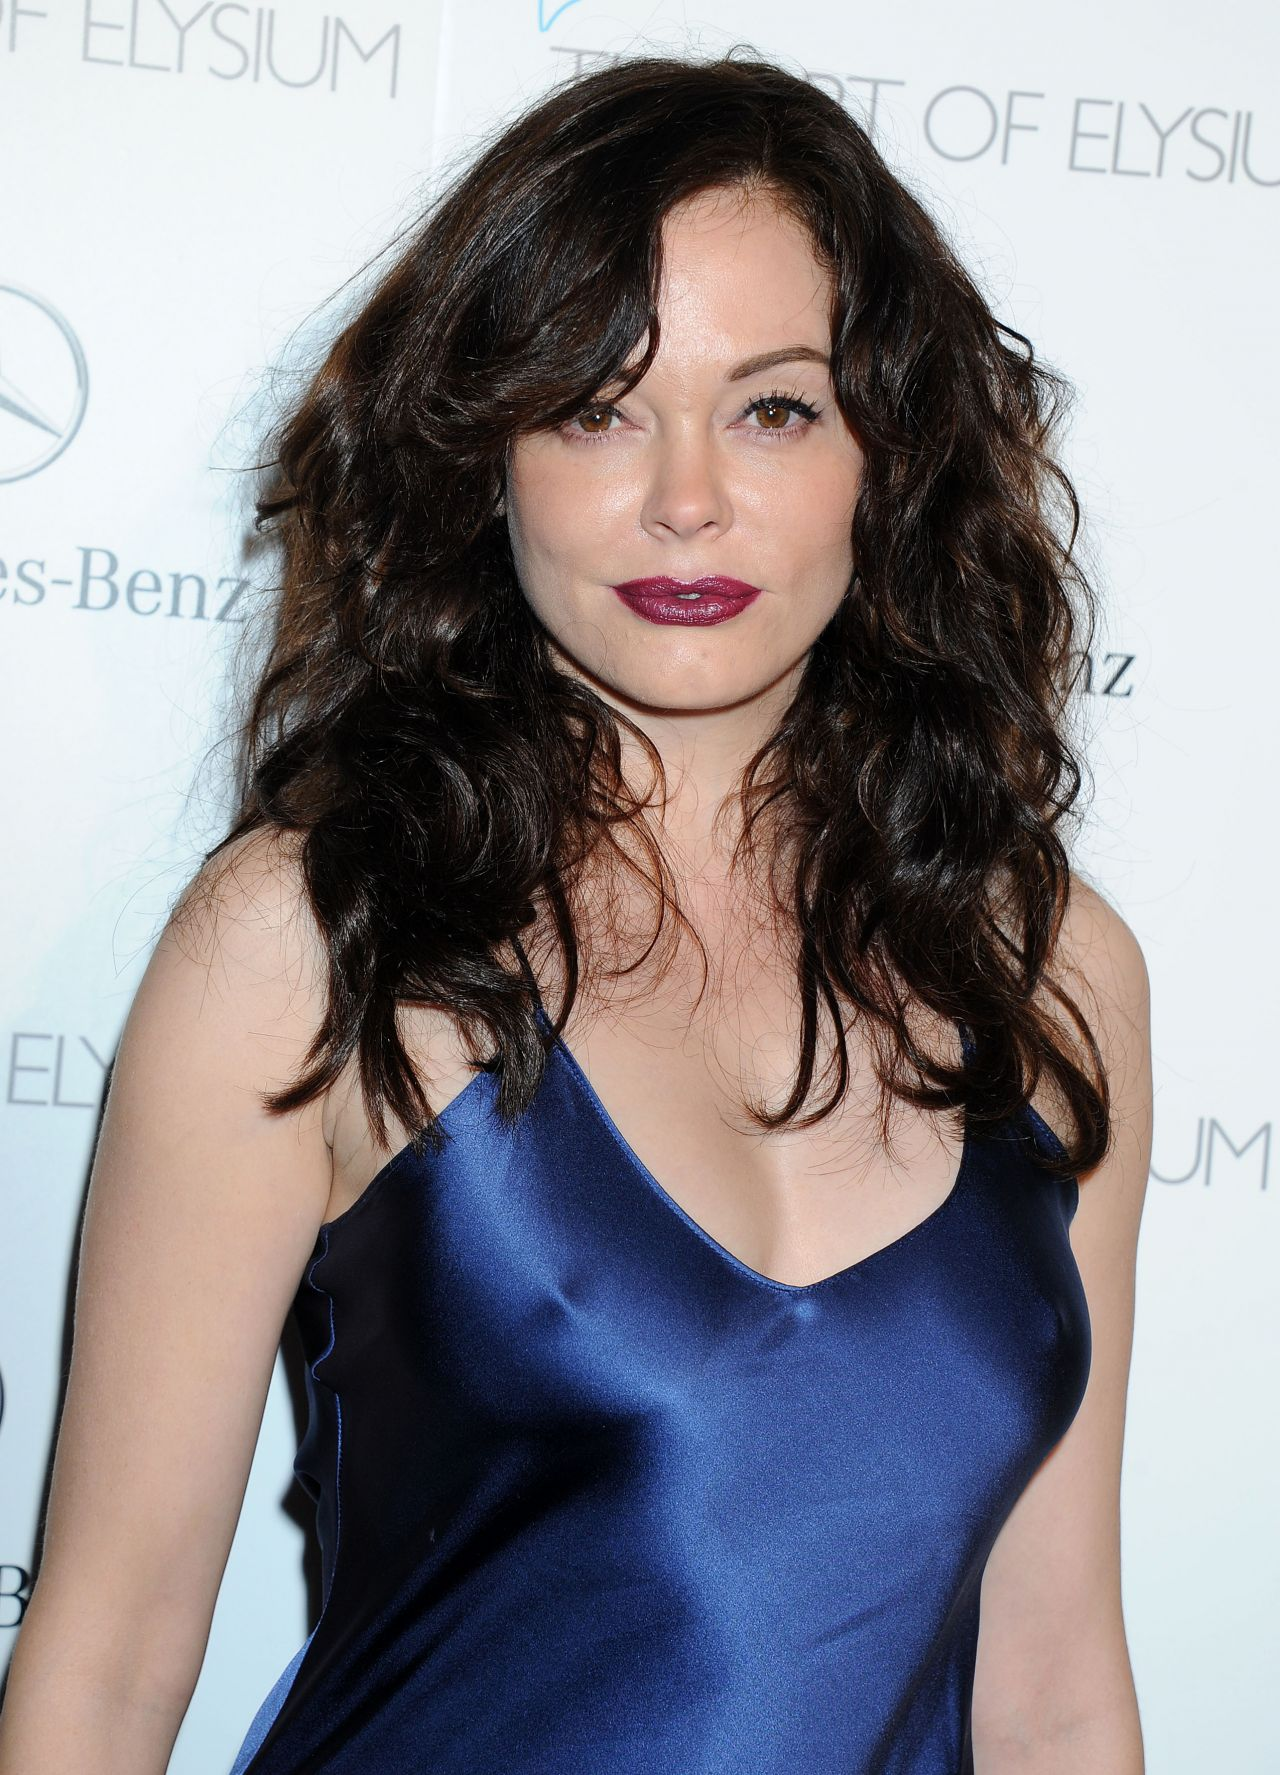 Rose McGowan - The Art of Elysium HEAVEN Gala, January 2014